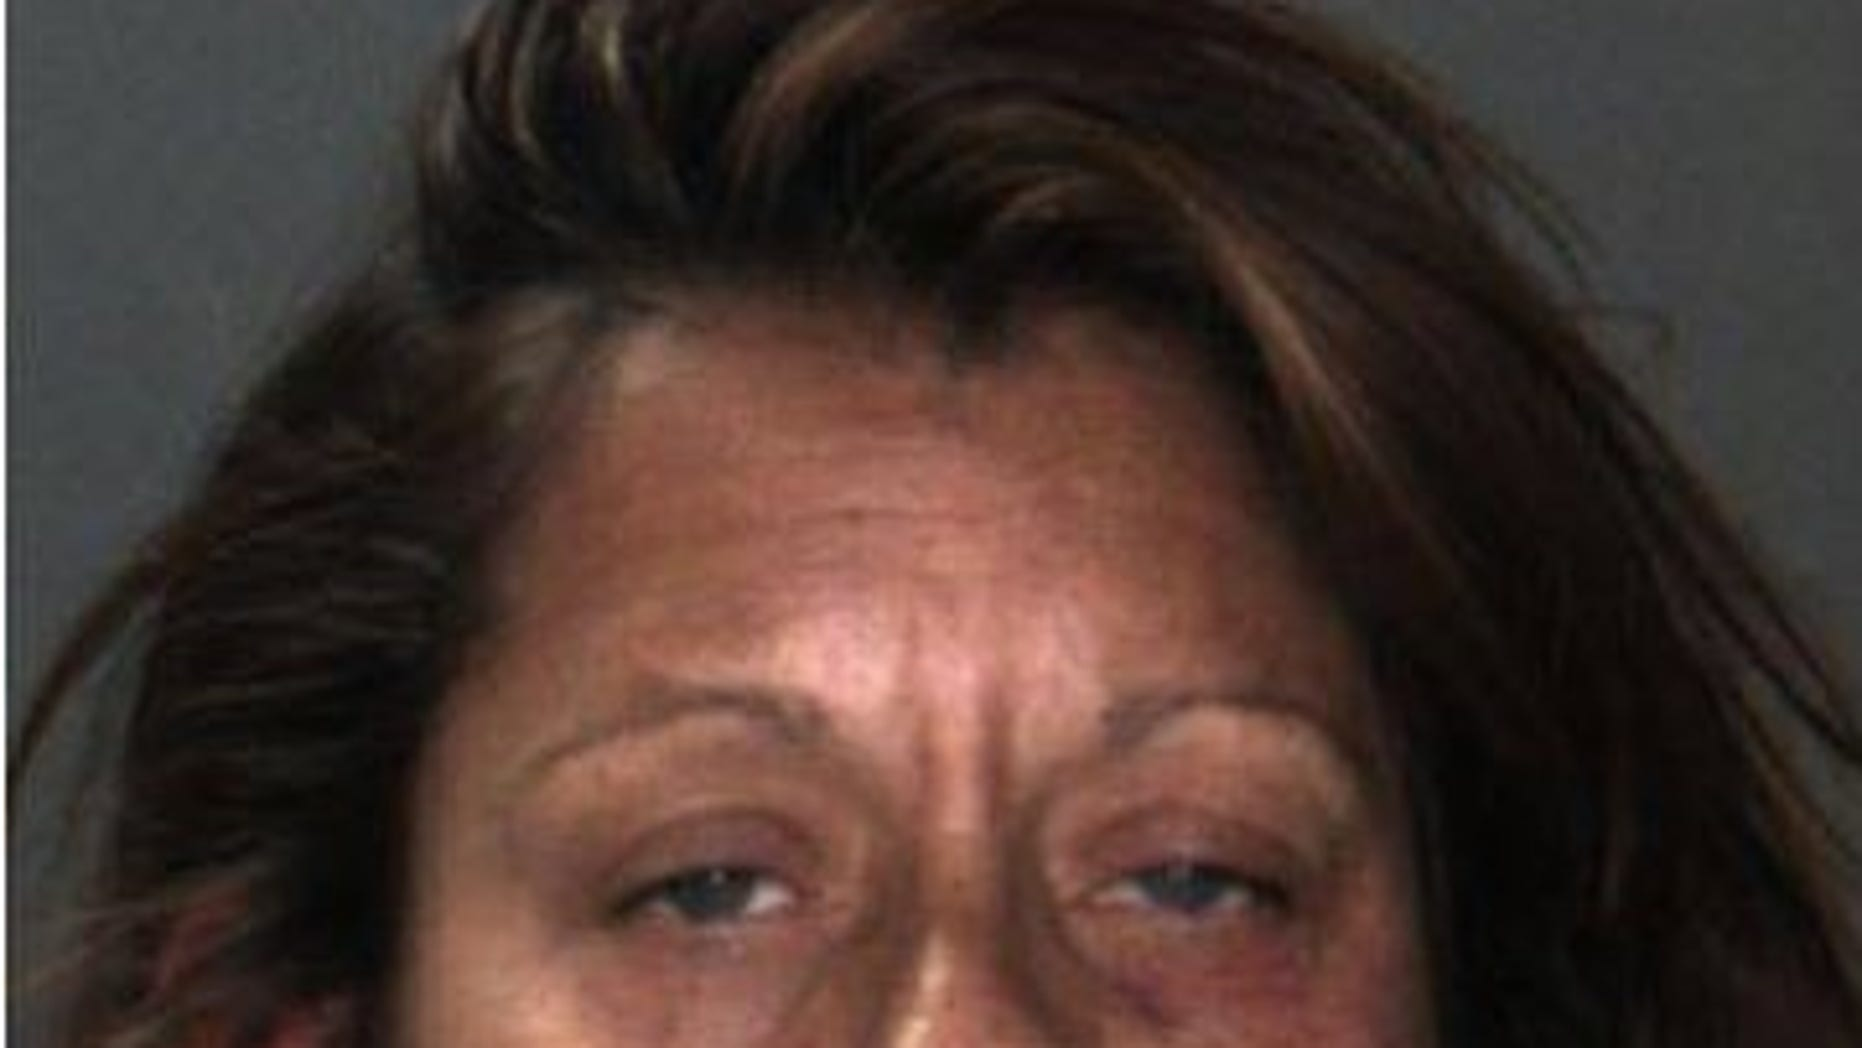 Cynthia Christine Molina, 51, was arrested for stabbing a man who exposed himself to her, police said.